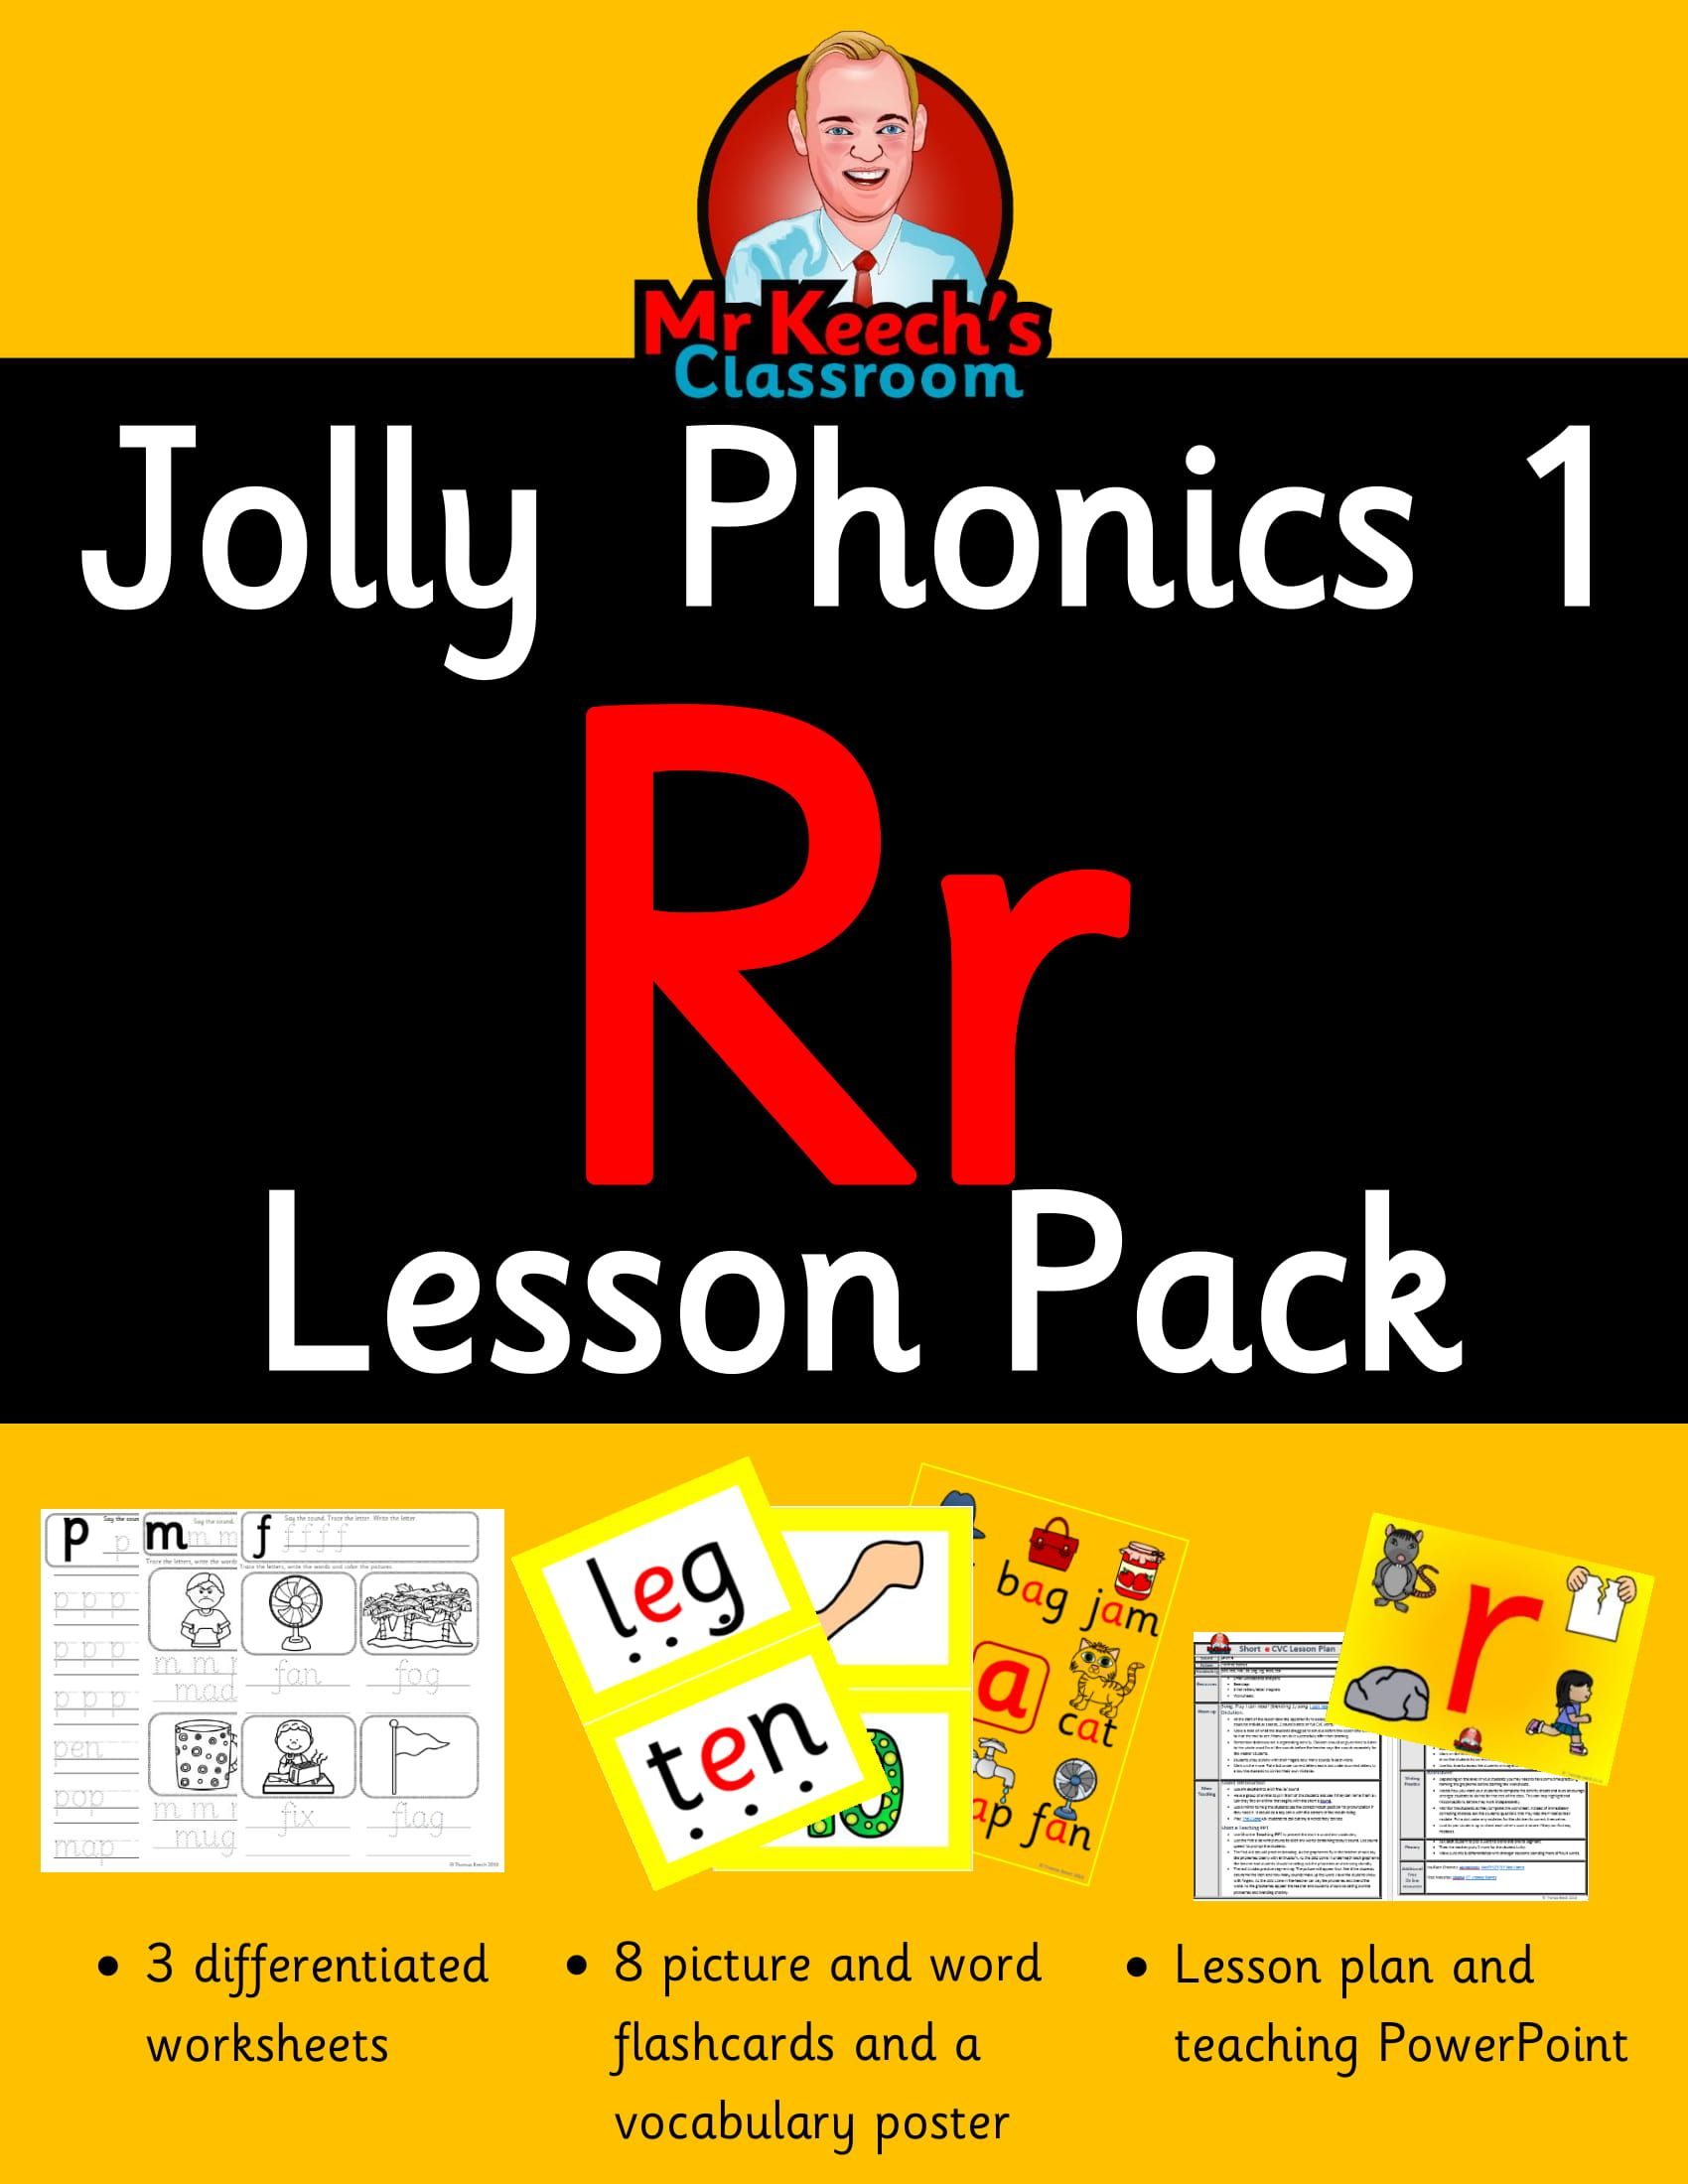 This Rr Lesson Pack Contains Everything You Need To Teach